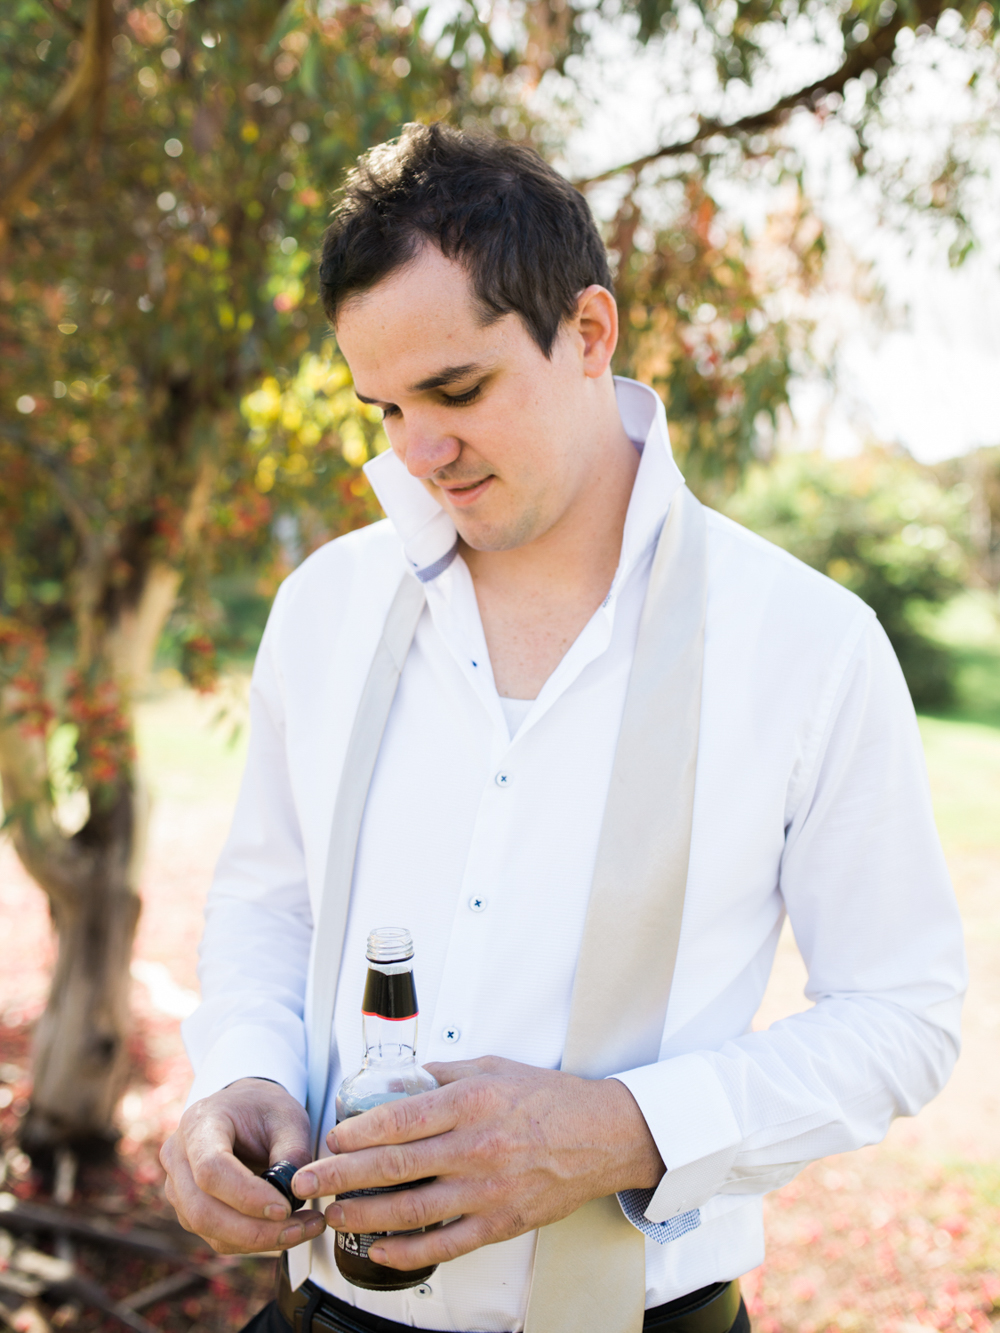 00003- Dubbo NSW Wedding Photographer Sheri McMahon.jpg